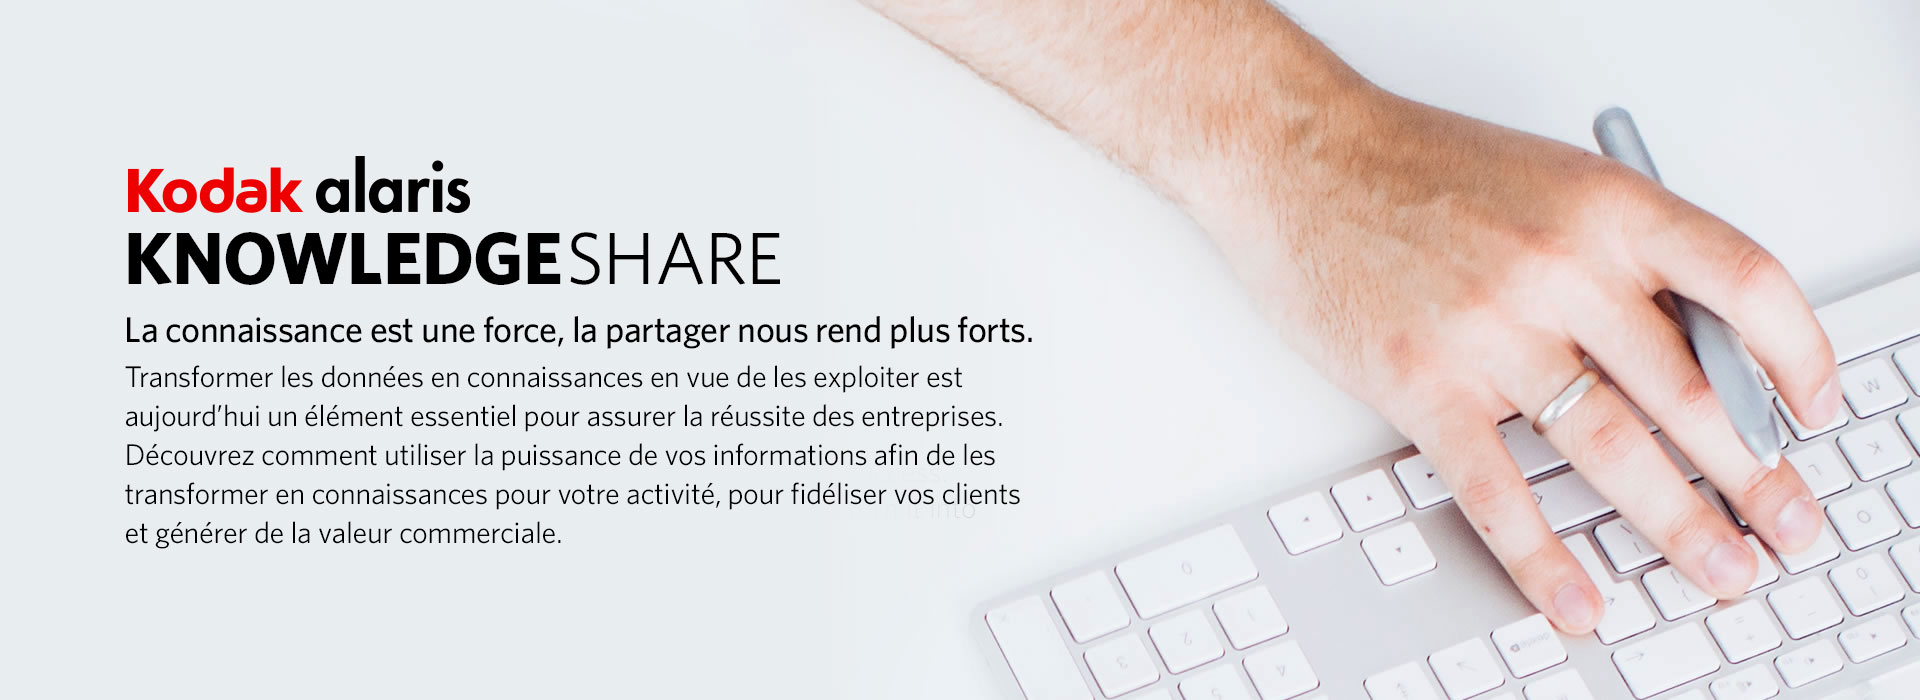 KnowledgeShare_1920x700_fr